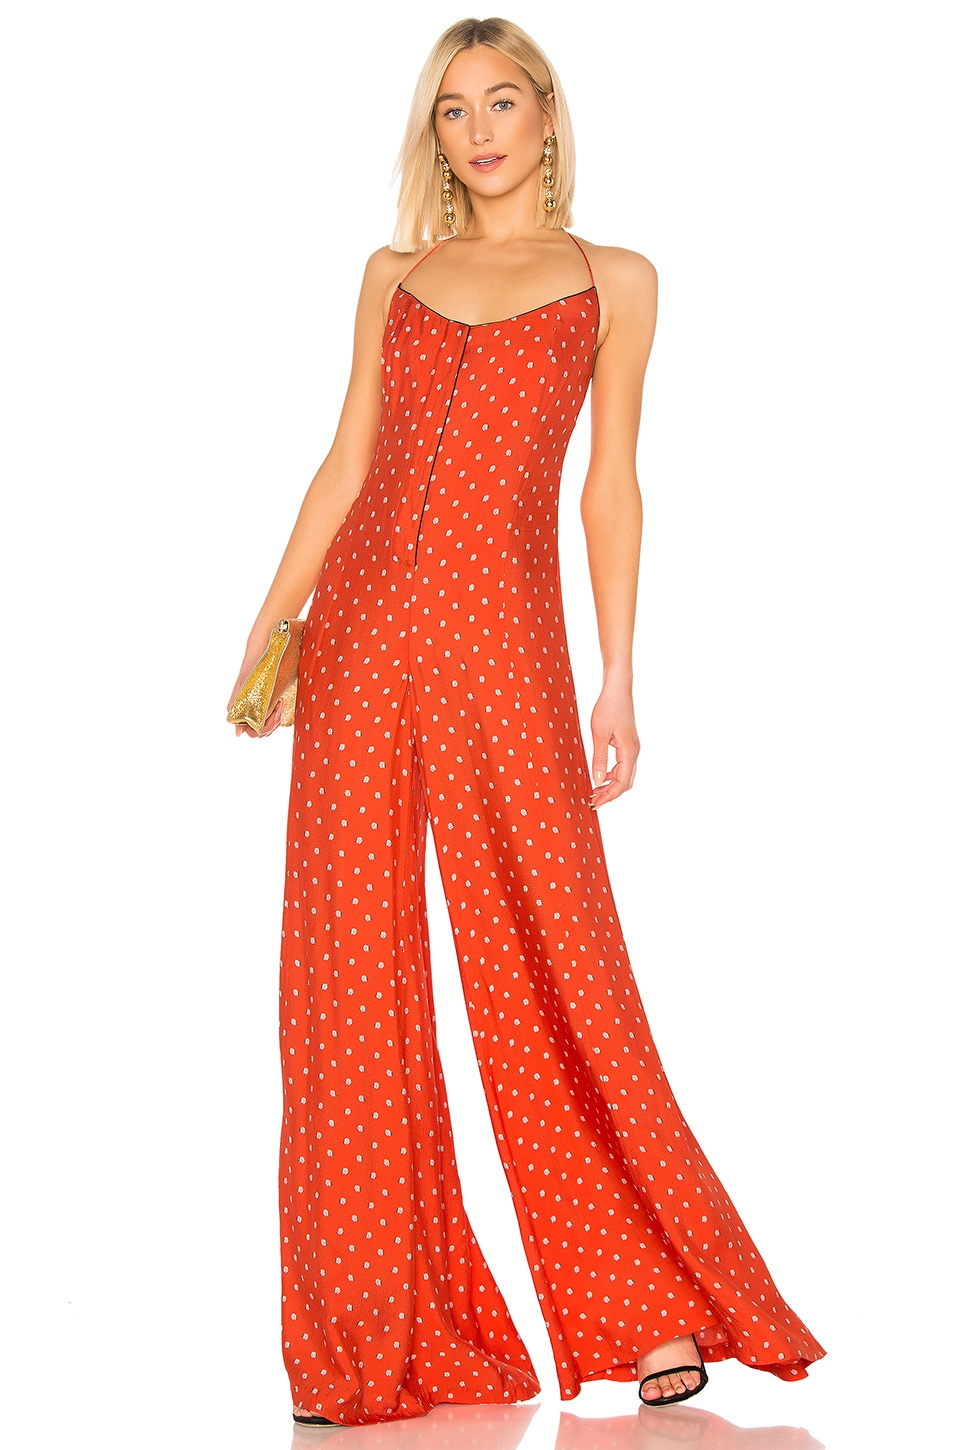 Alexis Holland Jumpsuit in Mandarin Shell